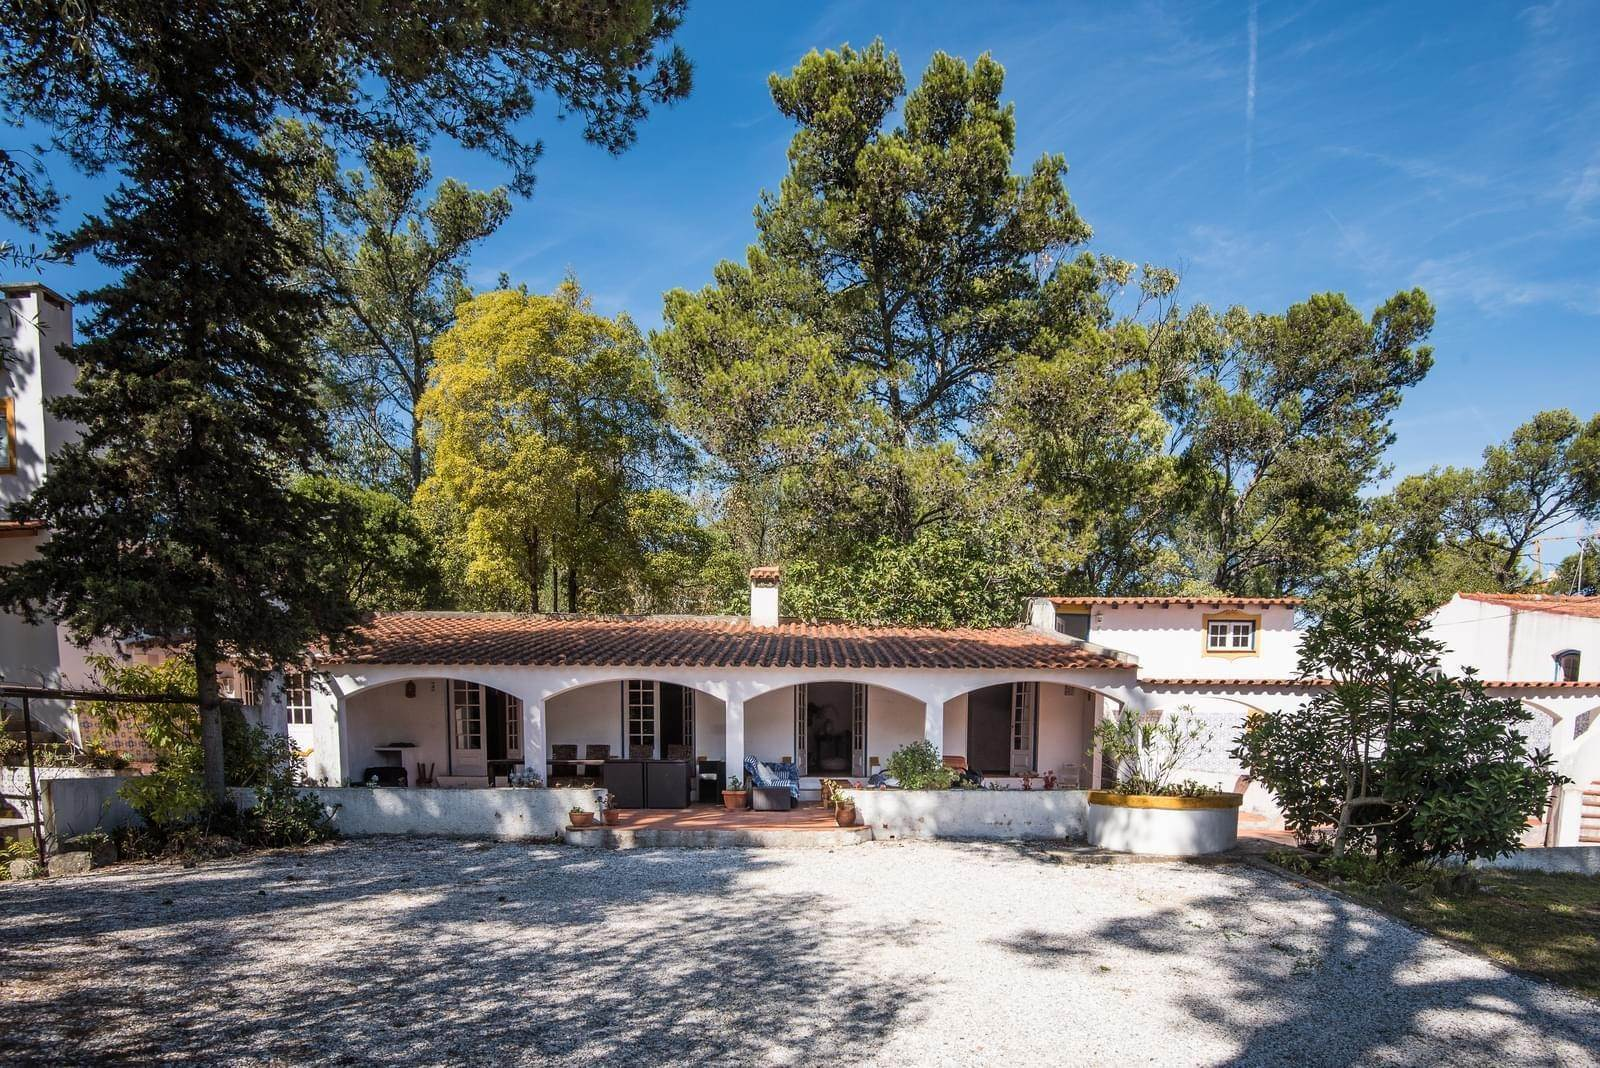 27. 別墅 / 联排别墅 為 出售 在 Unique property, located next to Quinta da Marinha, a quiet area.The property comprises six small villas, with deep refu... Cascais, 葡萄牙